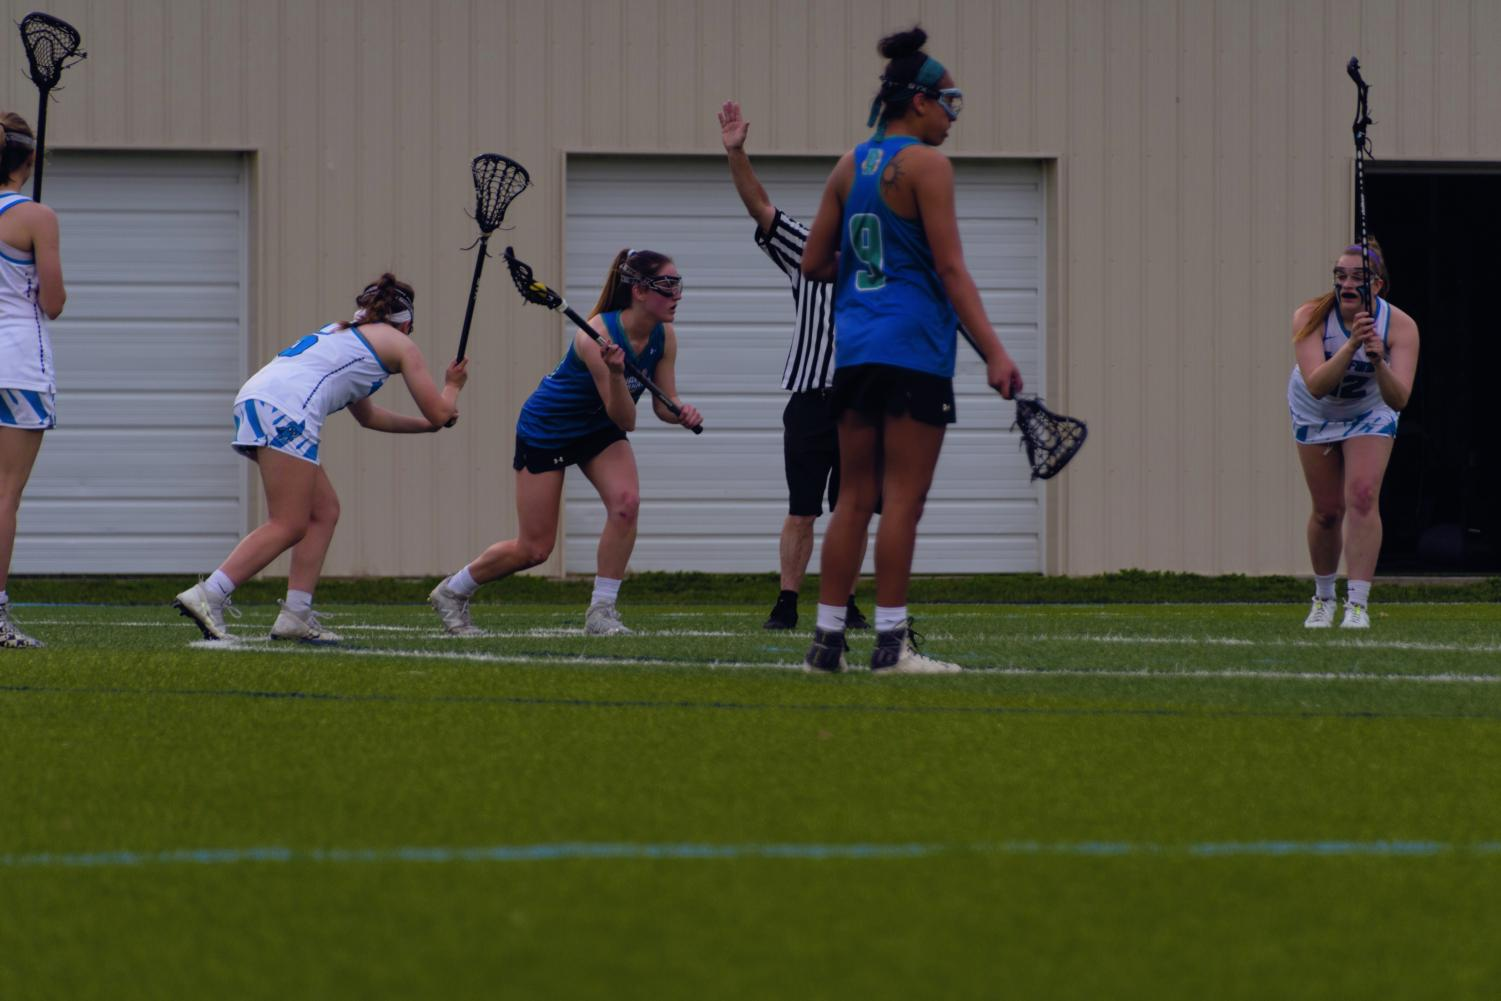 AACC Women's Lacrosse players Mariah Scott and Natalie Sonntag battle against Harford Community College in their game on April 8.